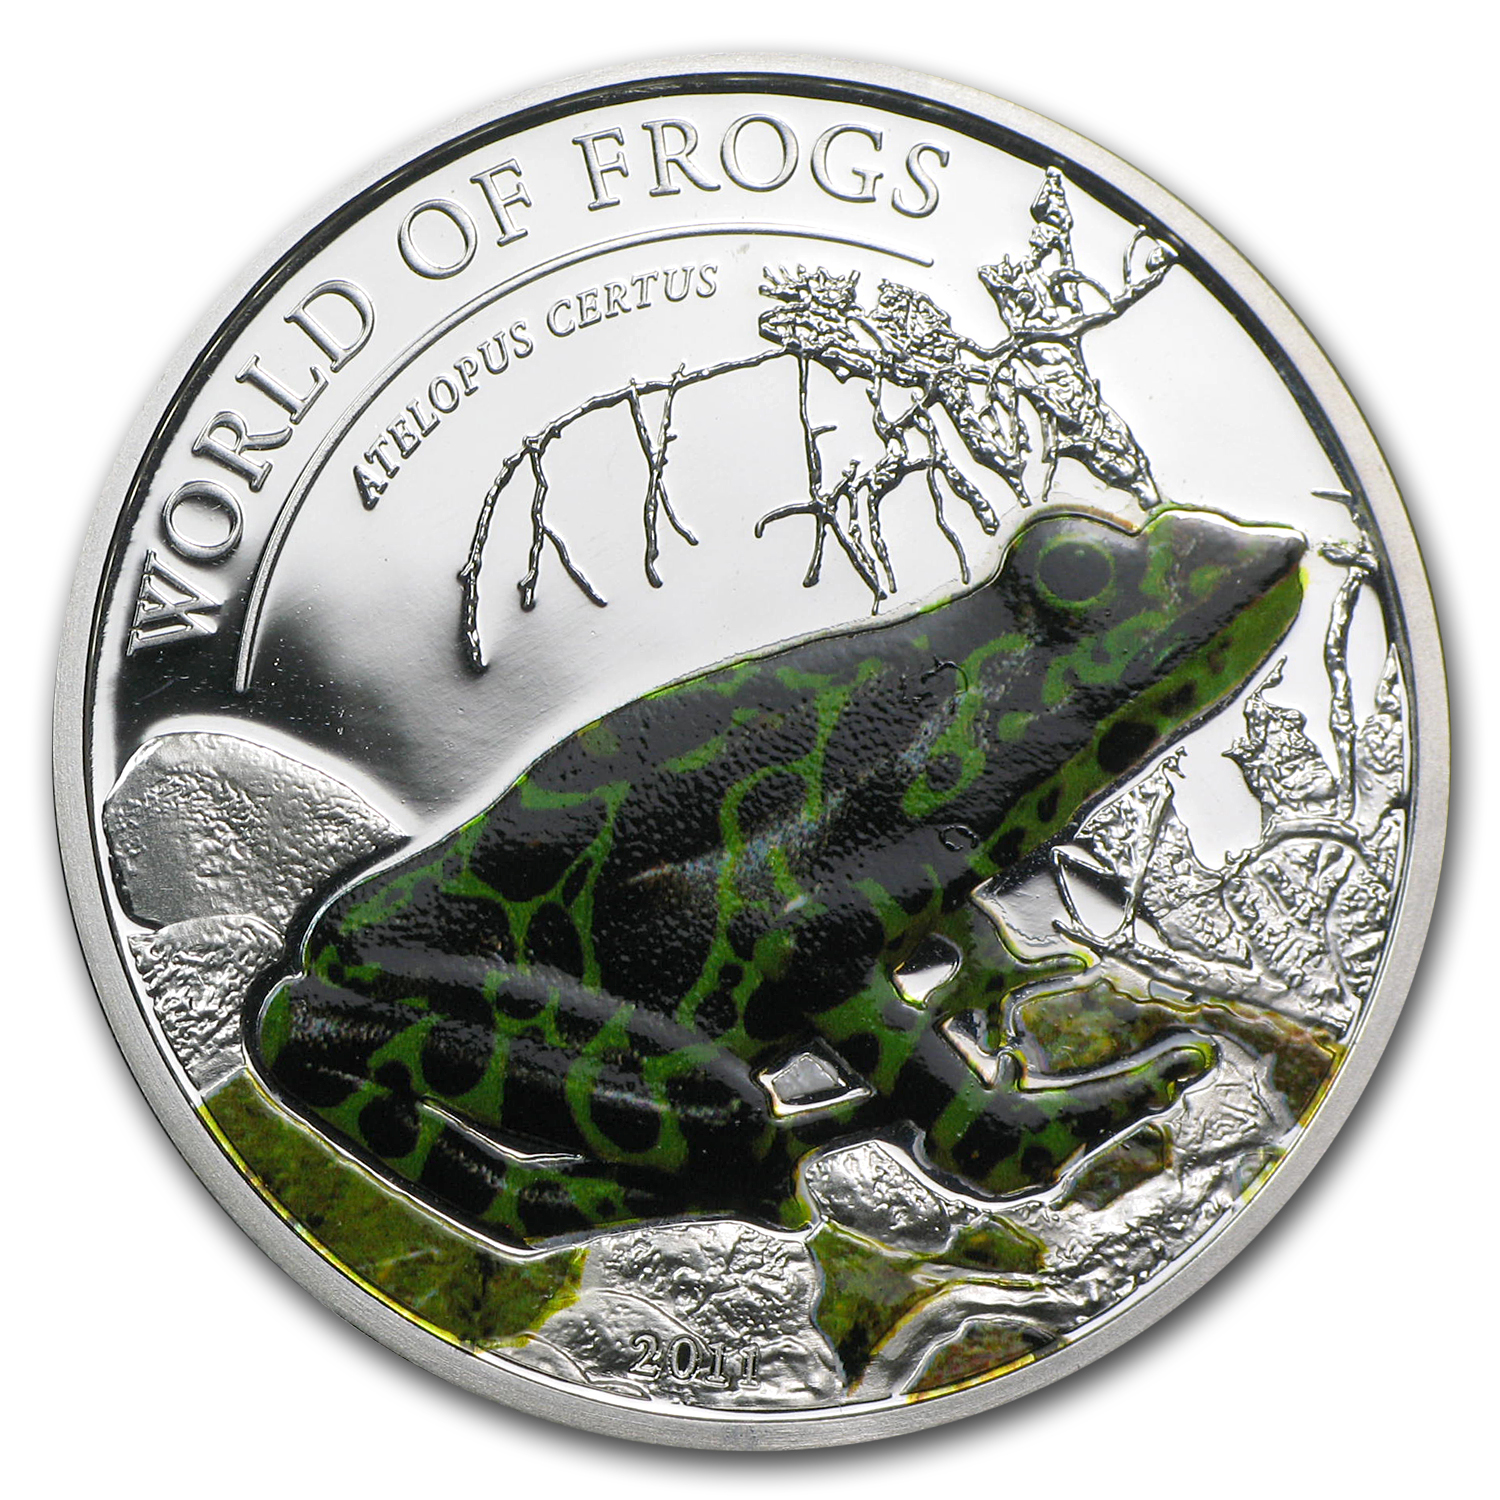 2011 Palau Proof Silver $2 World of Frogs Green Atelopus Certus